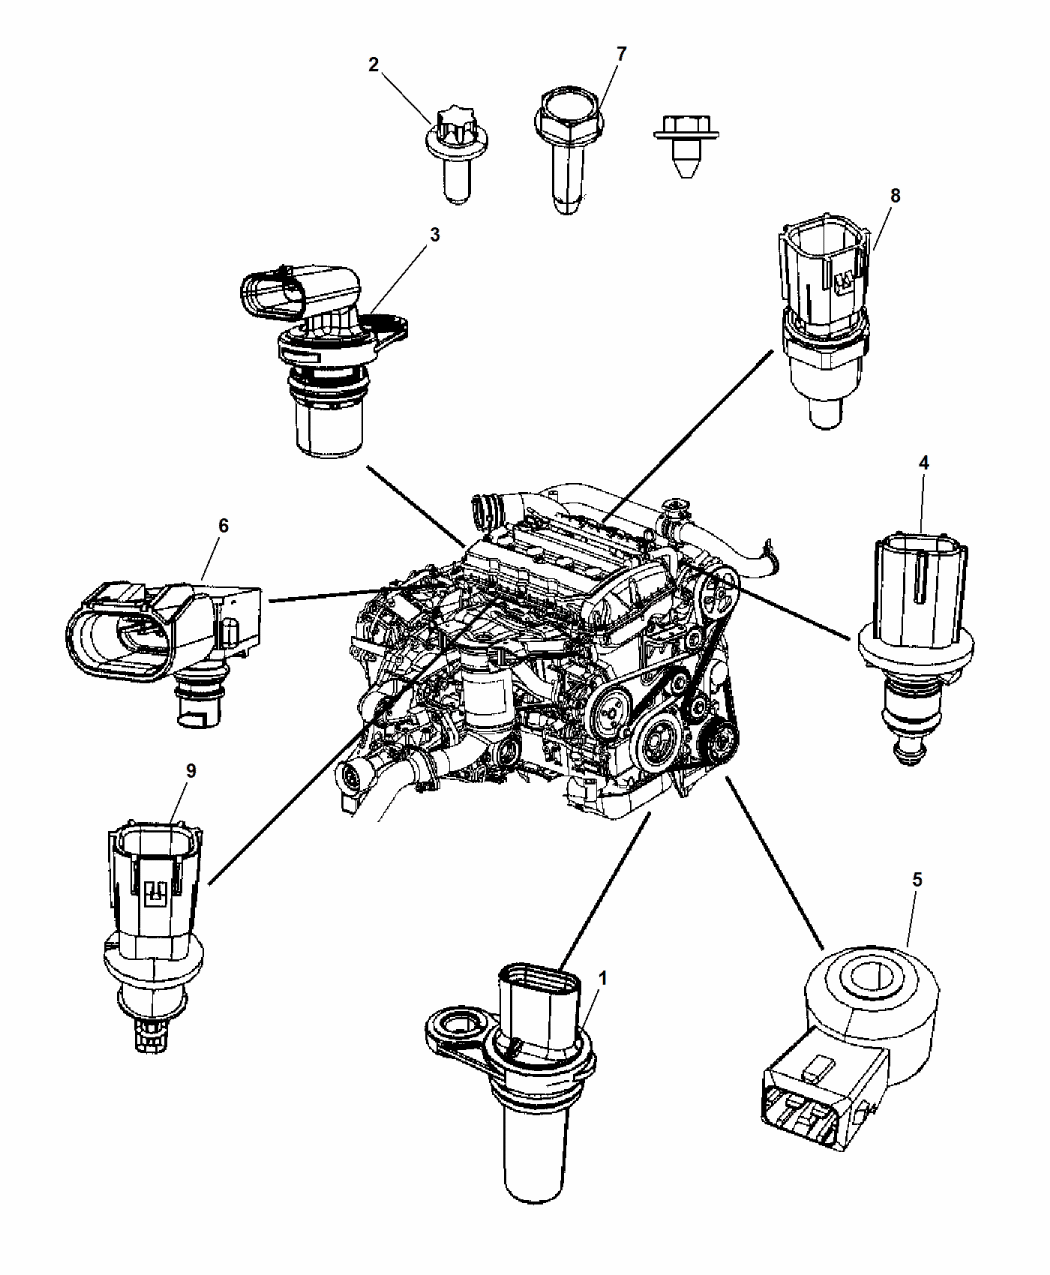 [SZ_5939] 2008 Jeep Patriot 2 0 Engine Diagram Free Diagram